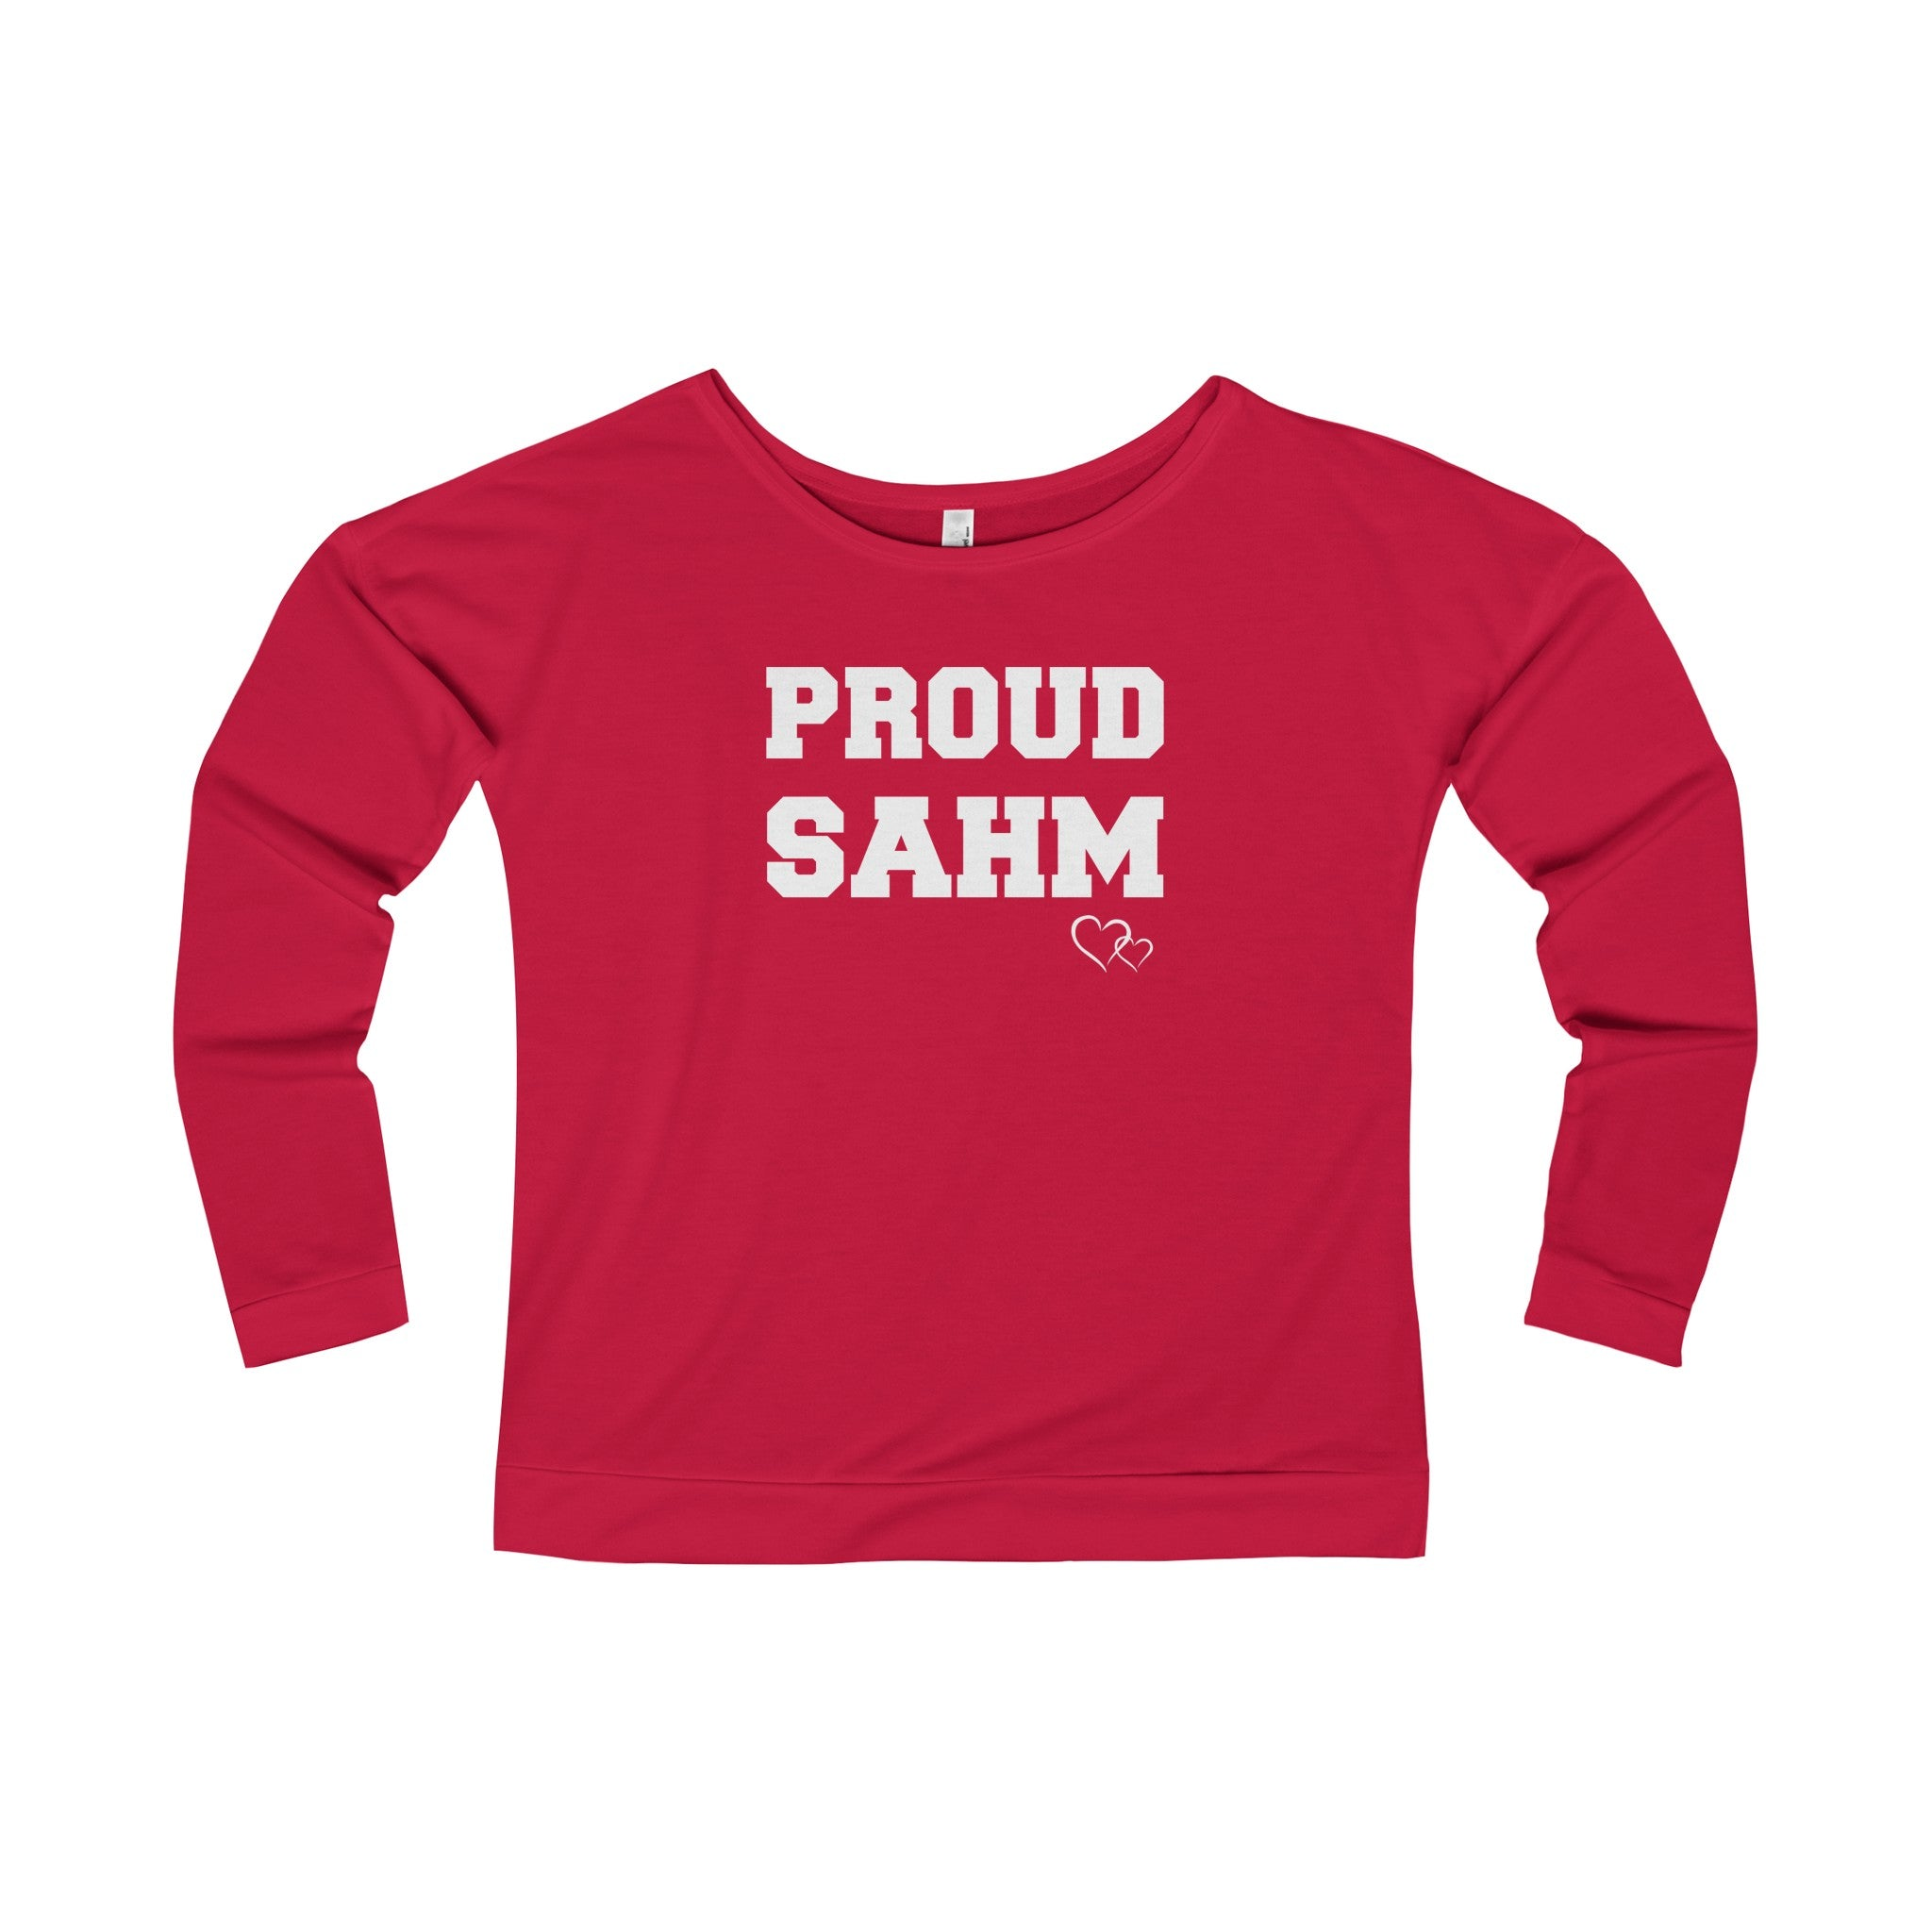 PROUD SAHM - Long Sleeve Scoop Terry T